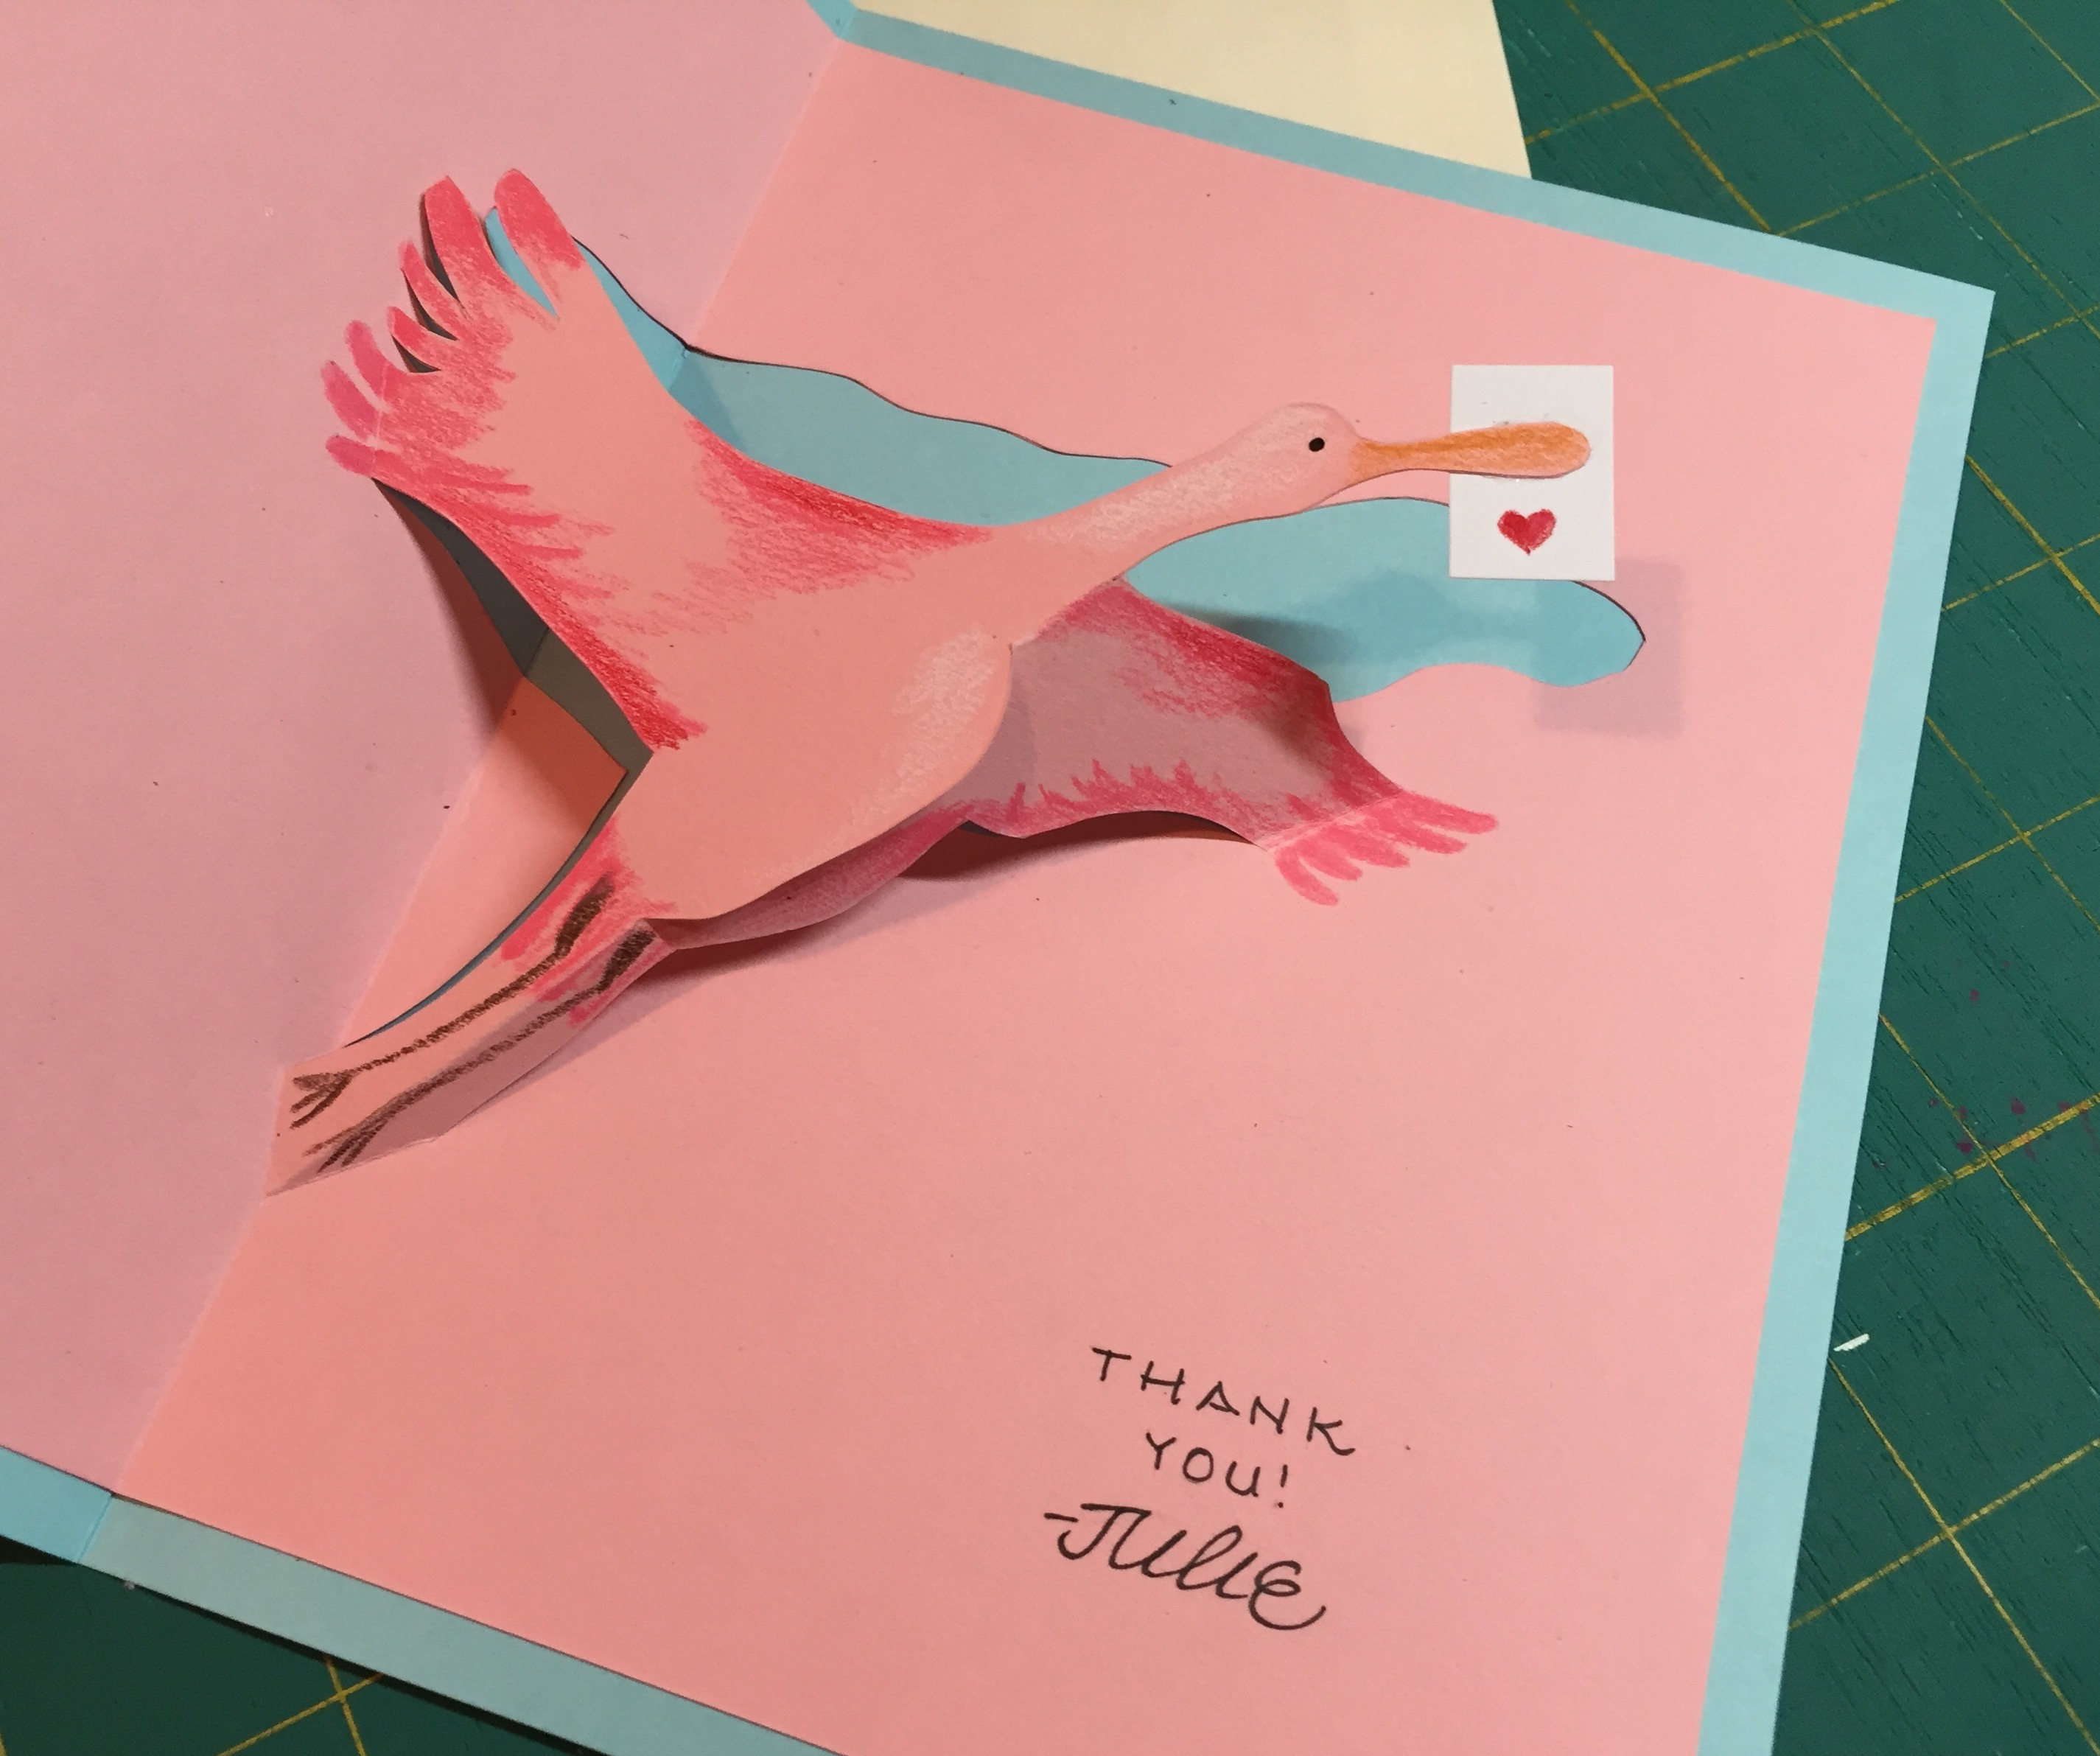 The crane sends thanks!